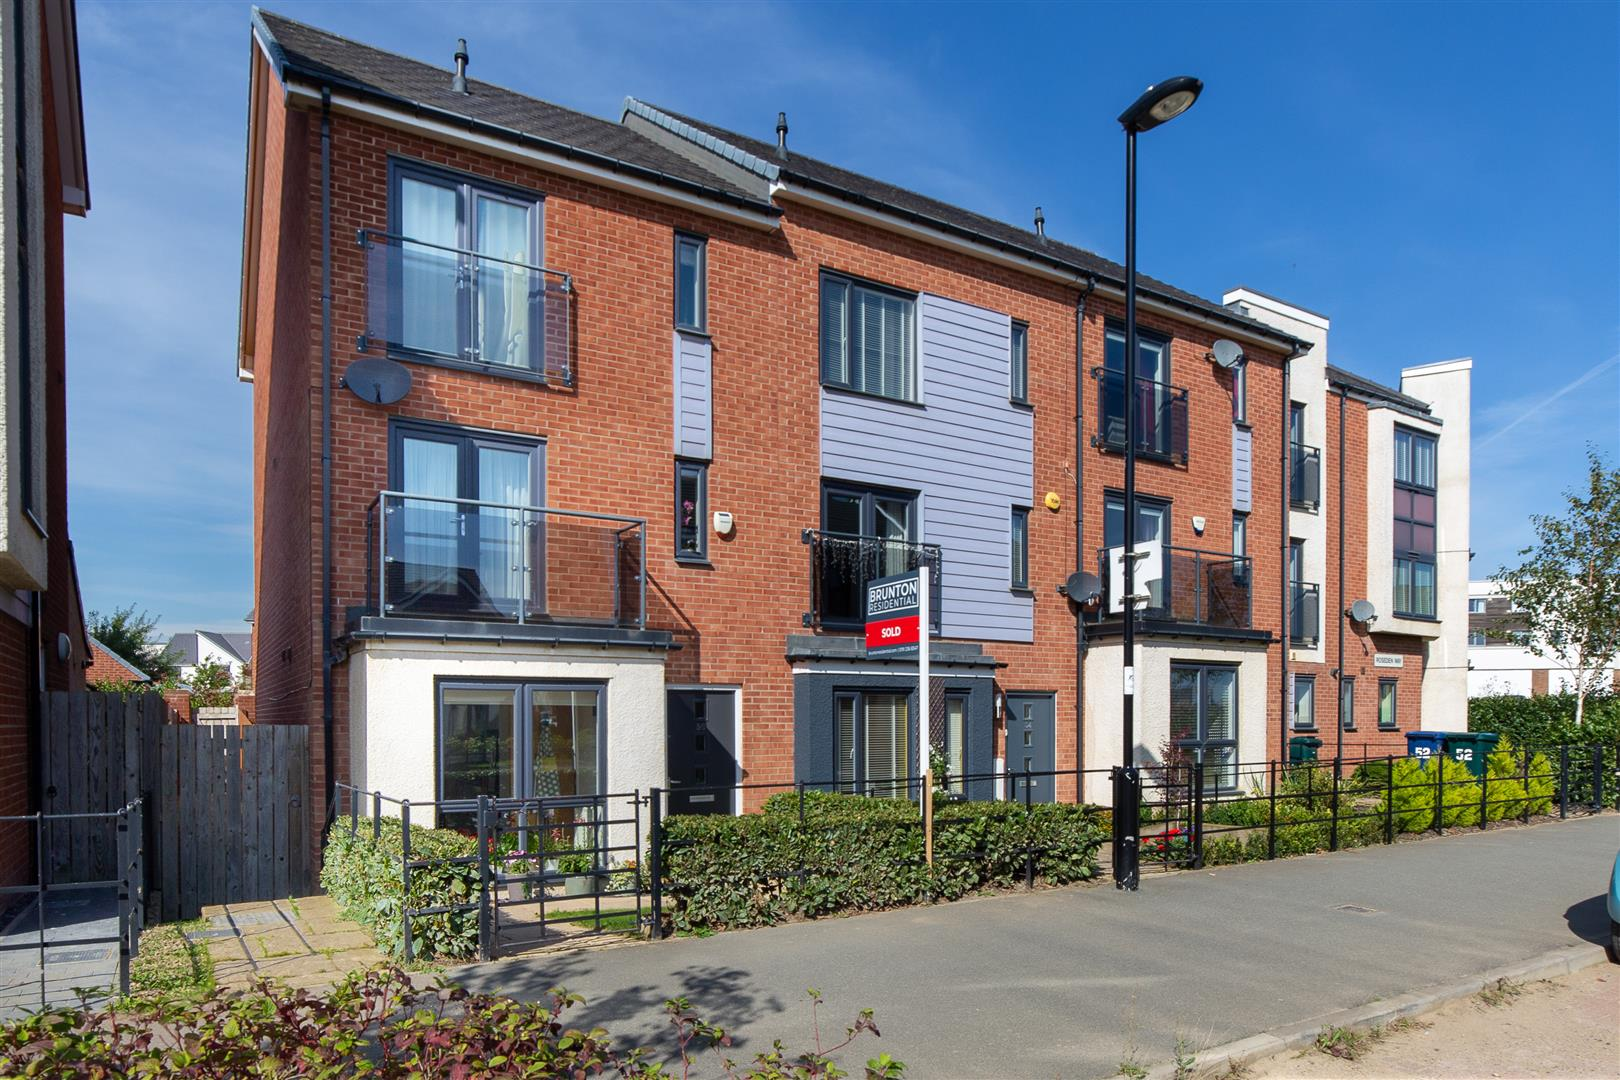 4 bed town house for sale in Great Park, NE13 9BN  - Property Image 1